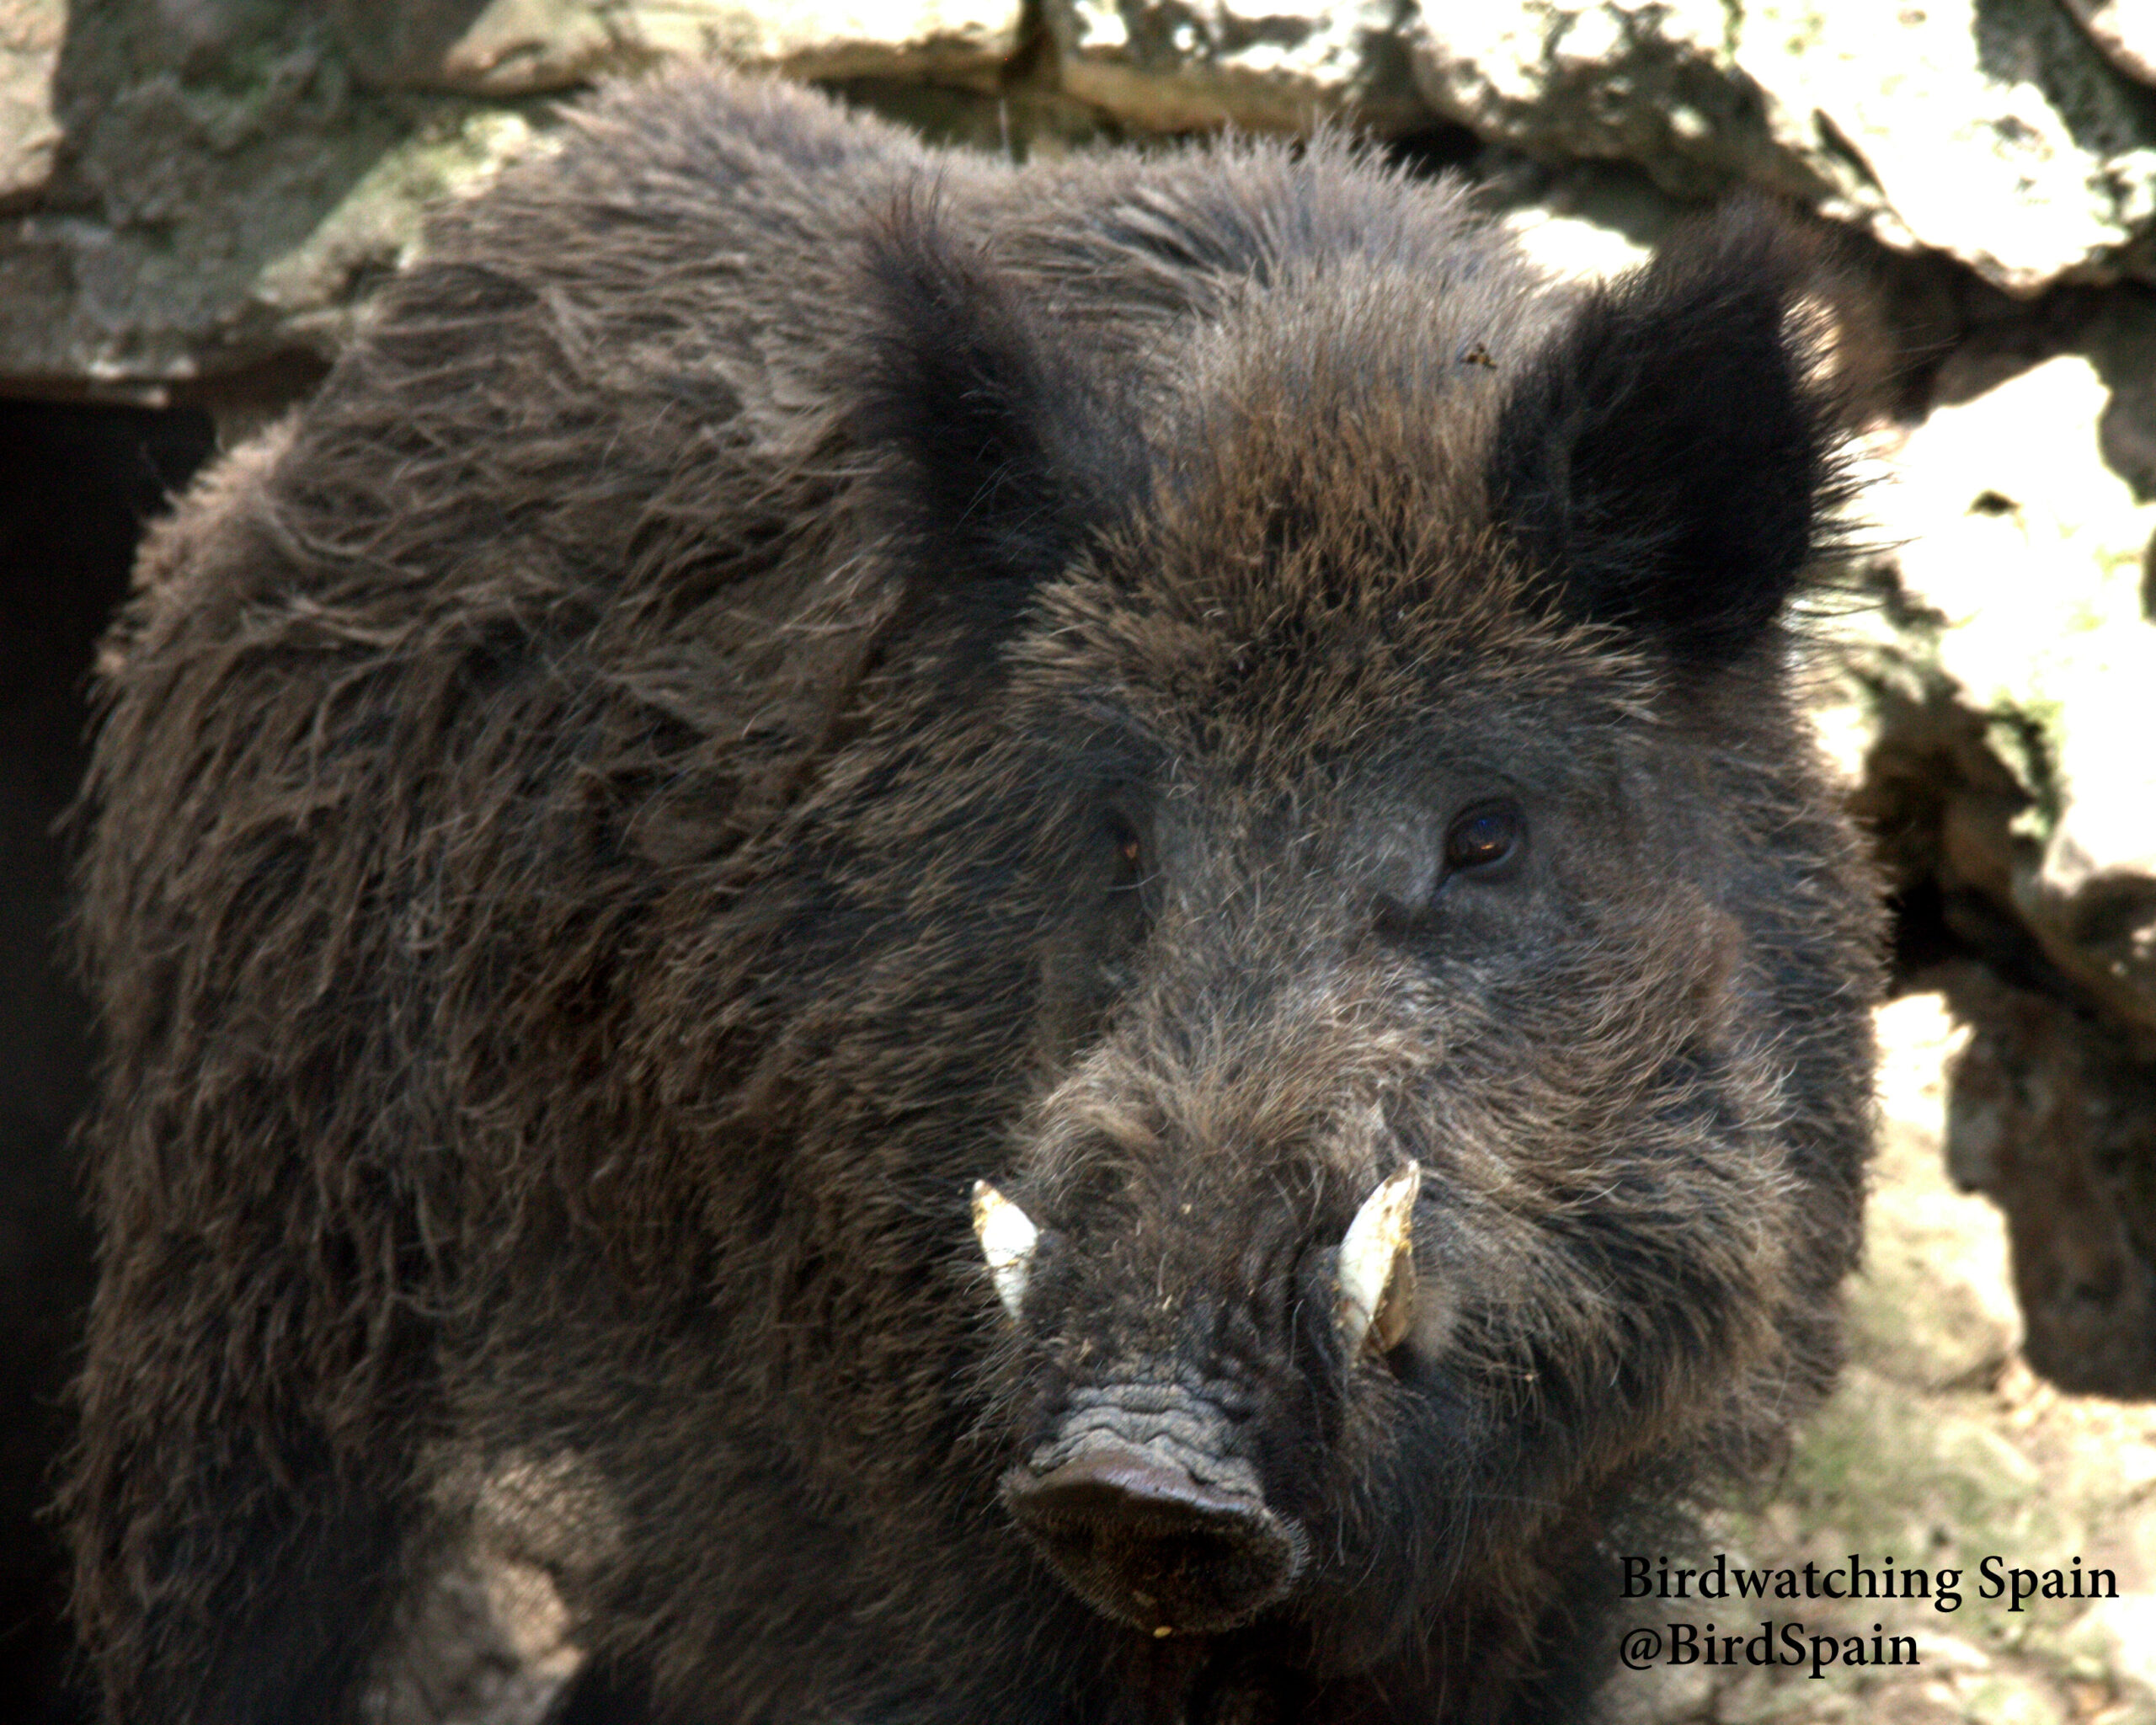 Birding La Mancha Humeda | Birdwatching Spain